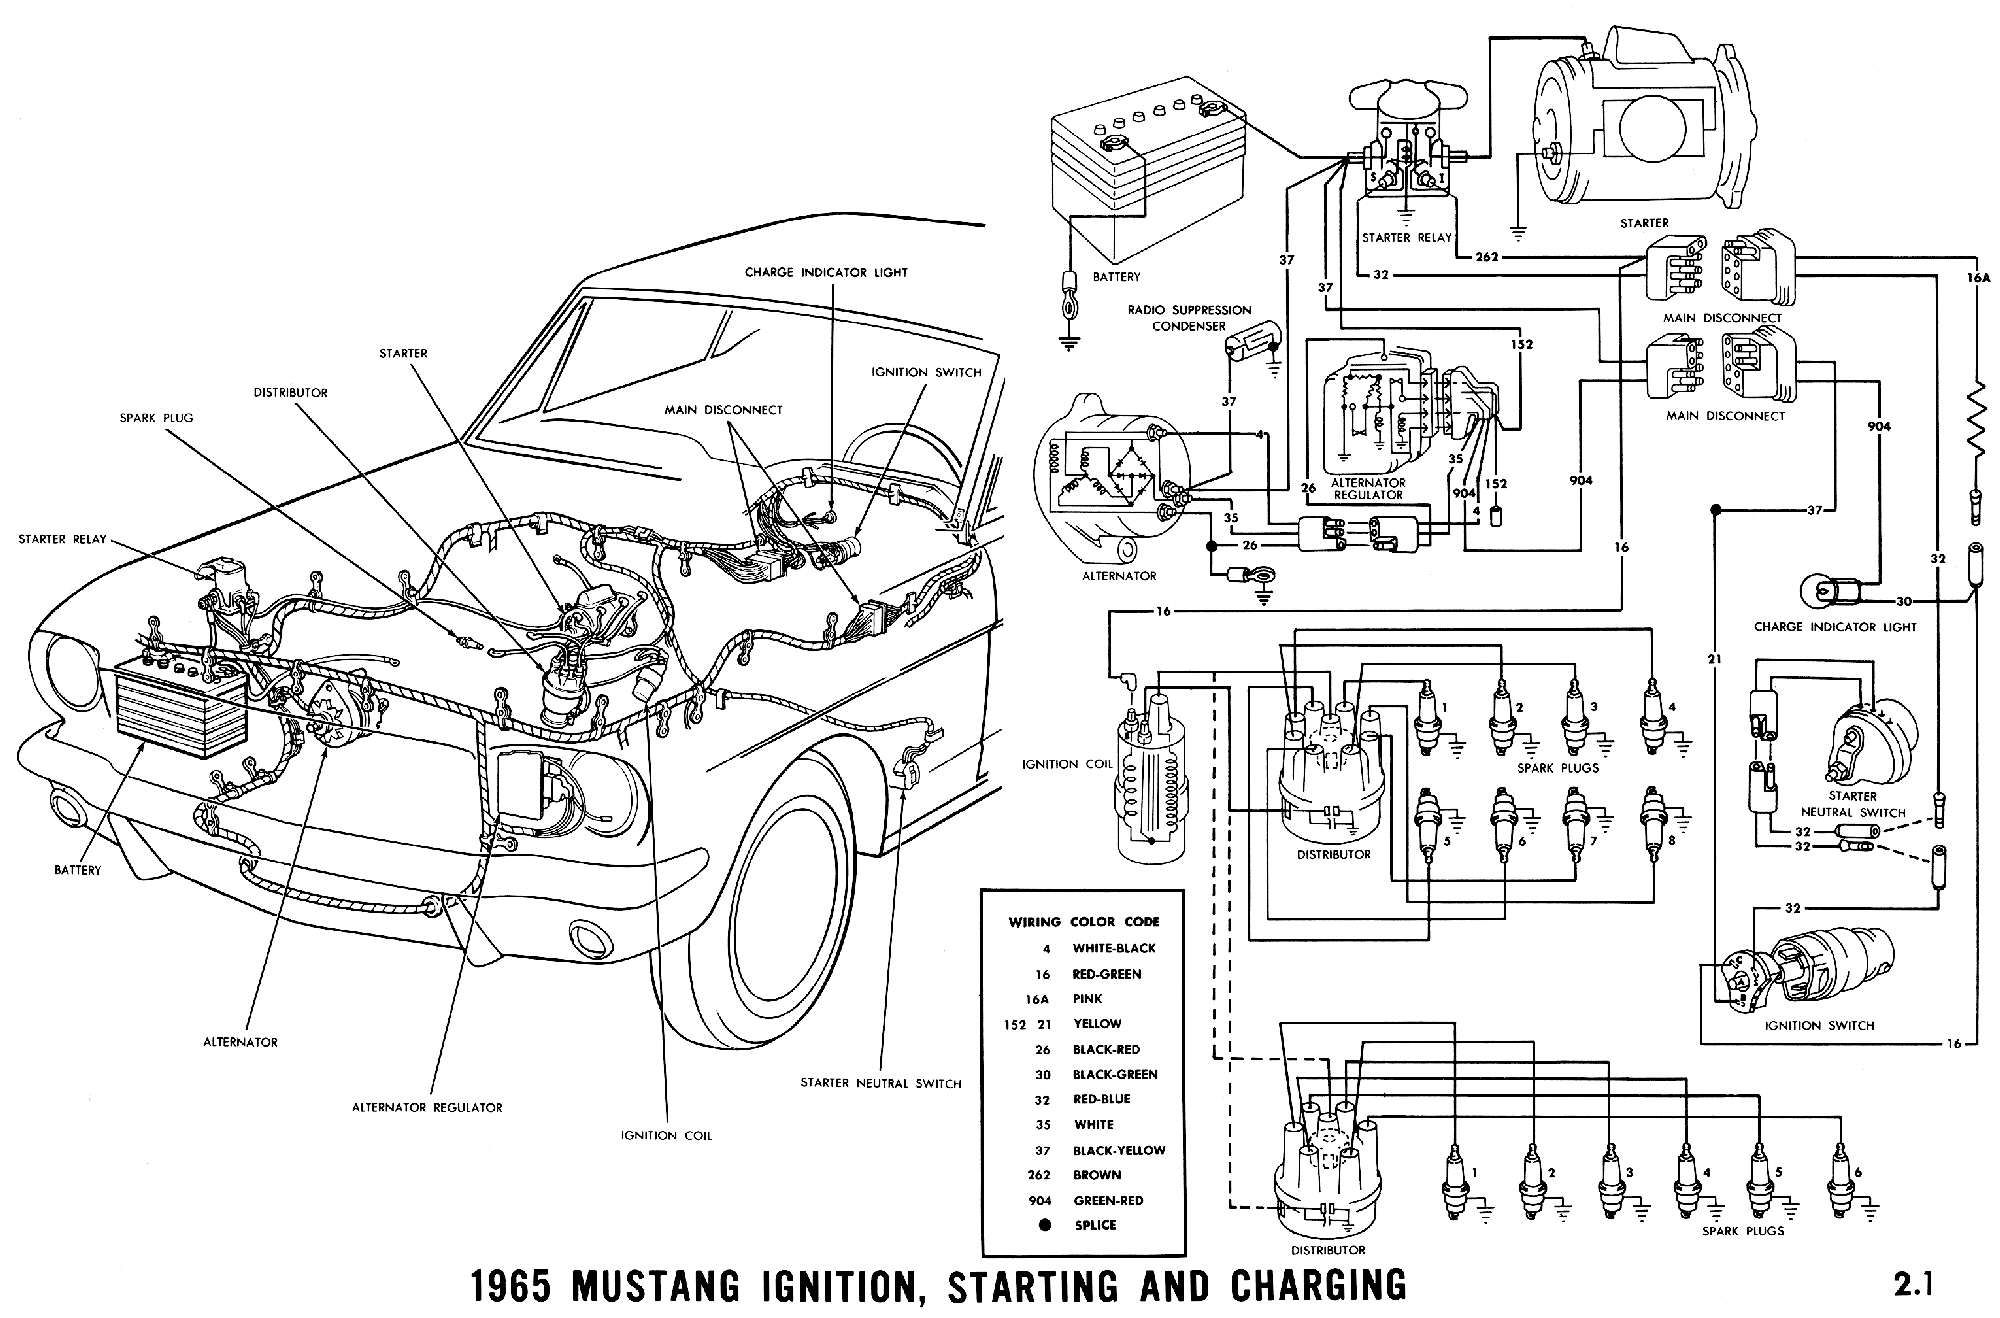 1965 mustang wiring diagrams average joe restoration mustang rh pinterest  com 1966 Mustang Body Wiring Harness